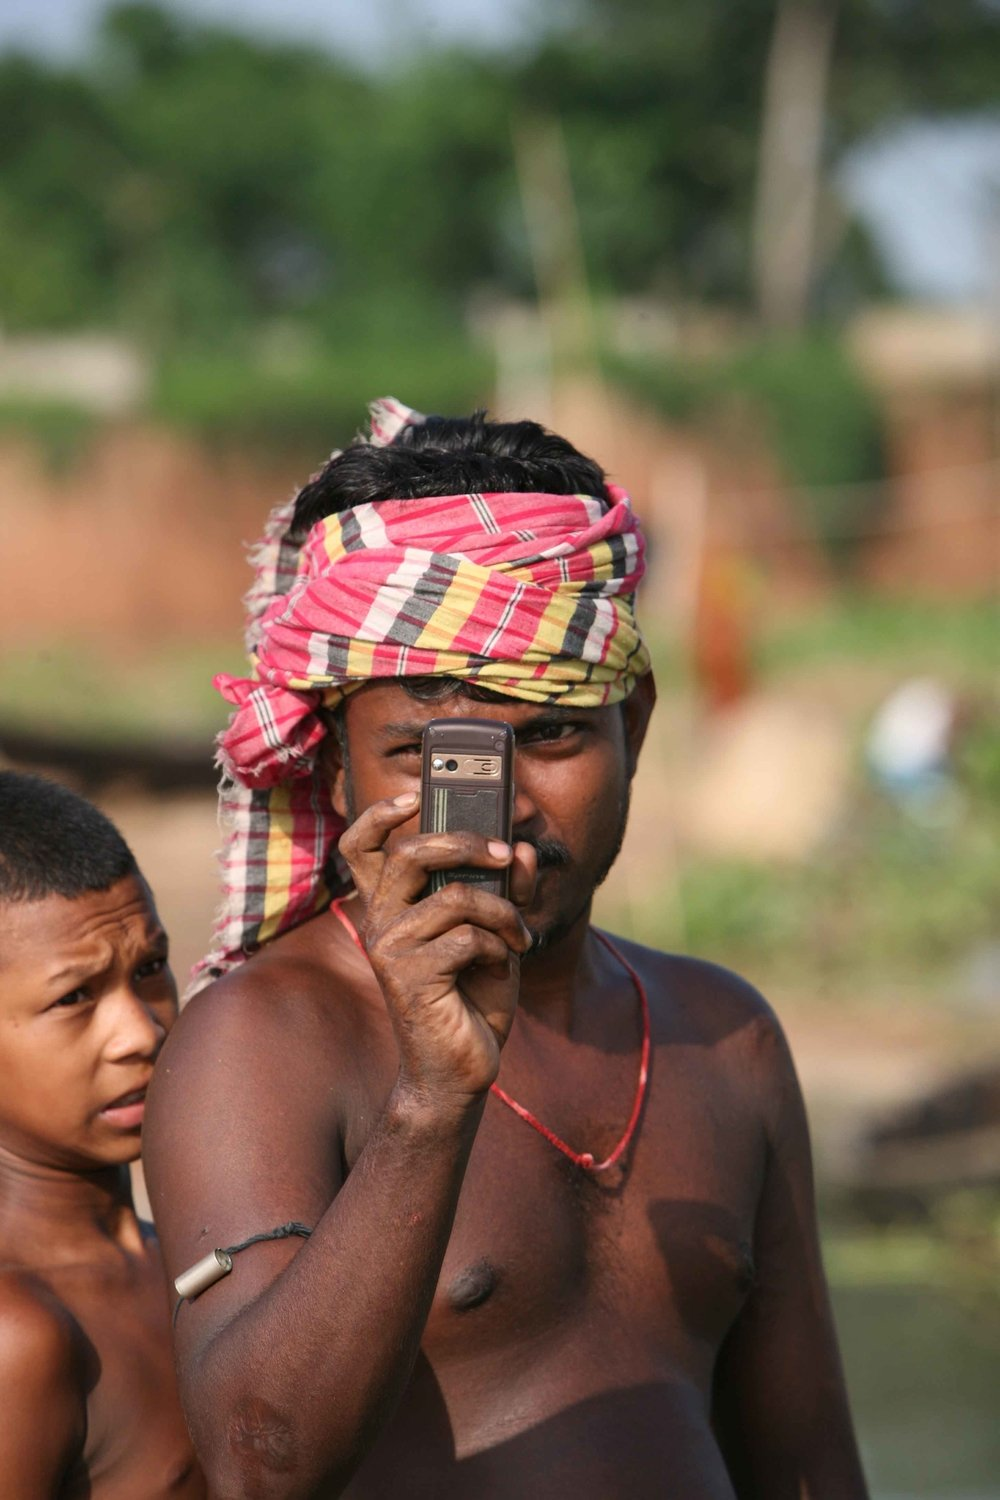 A slum resident takes a snap shot with a mobile phone, Dhaka, Bangladesh, July 2007. 56 percent of the city's population live in slums and slum-like conditions.